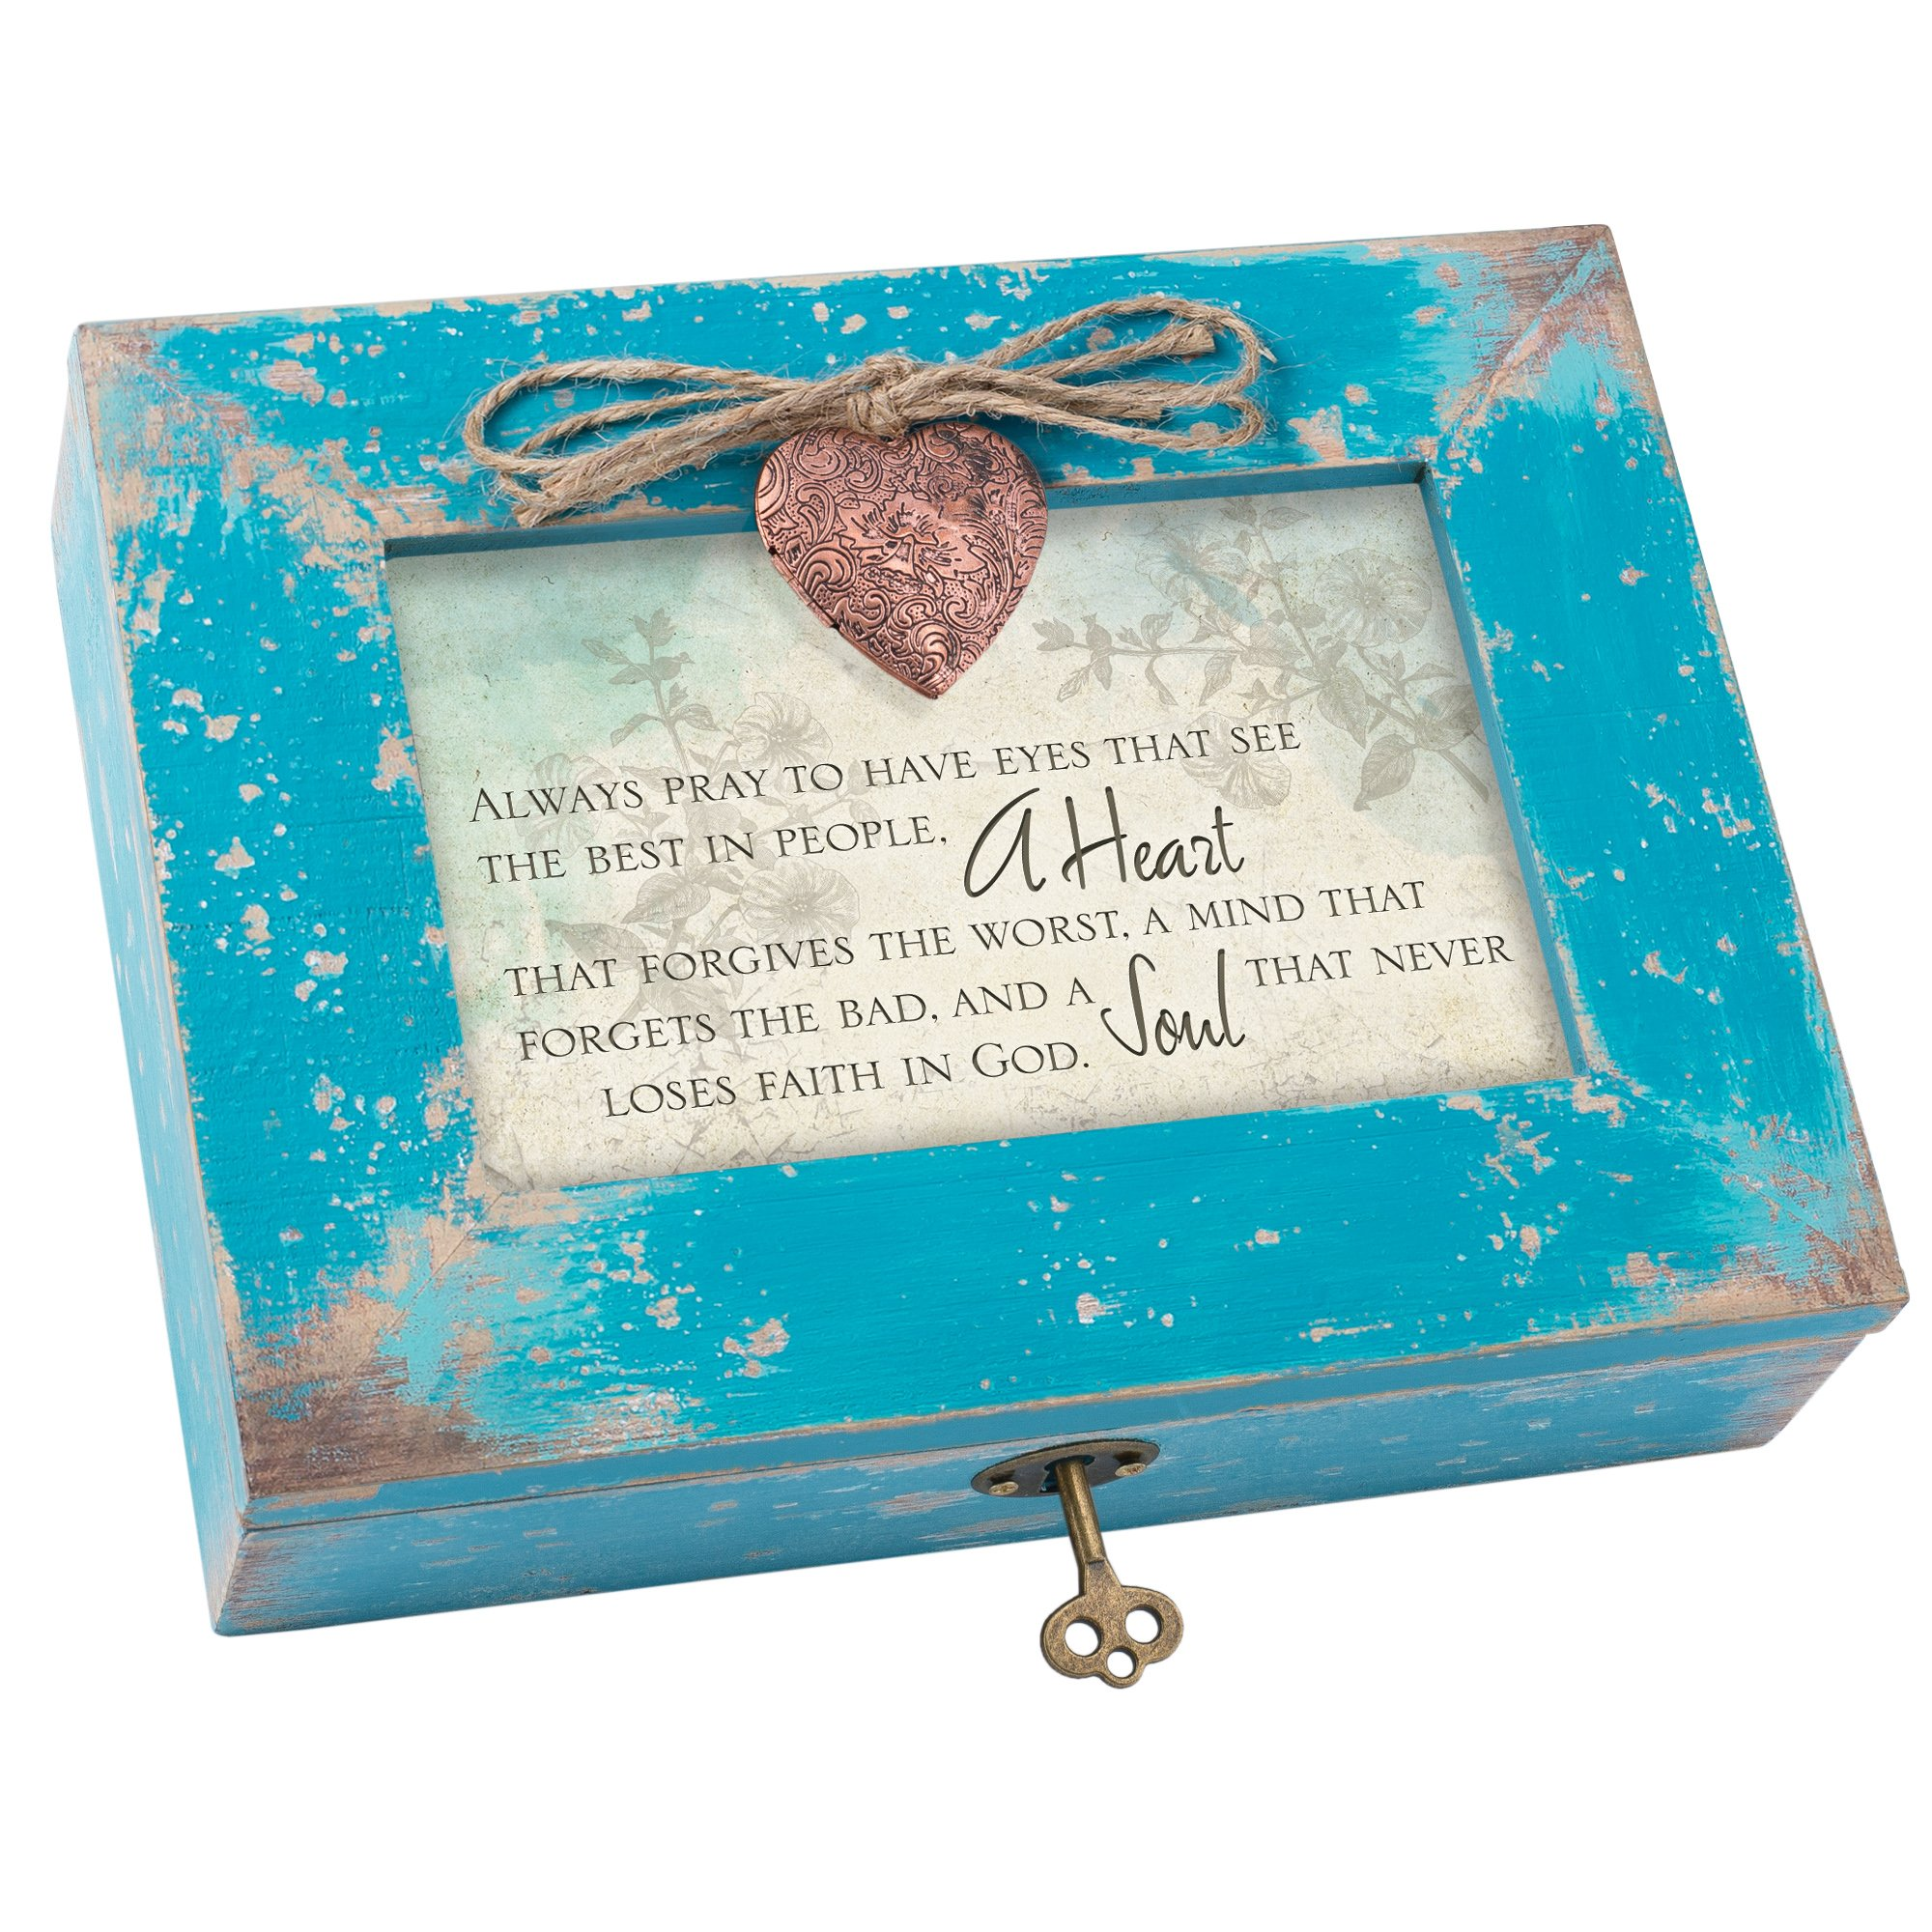 Cottage Garden Eyes See Heart Forgives Teal Wood Locket Jewelry Music Box Plays Tune We Have a Friend in Jesus